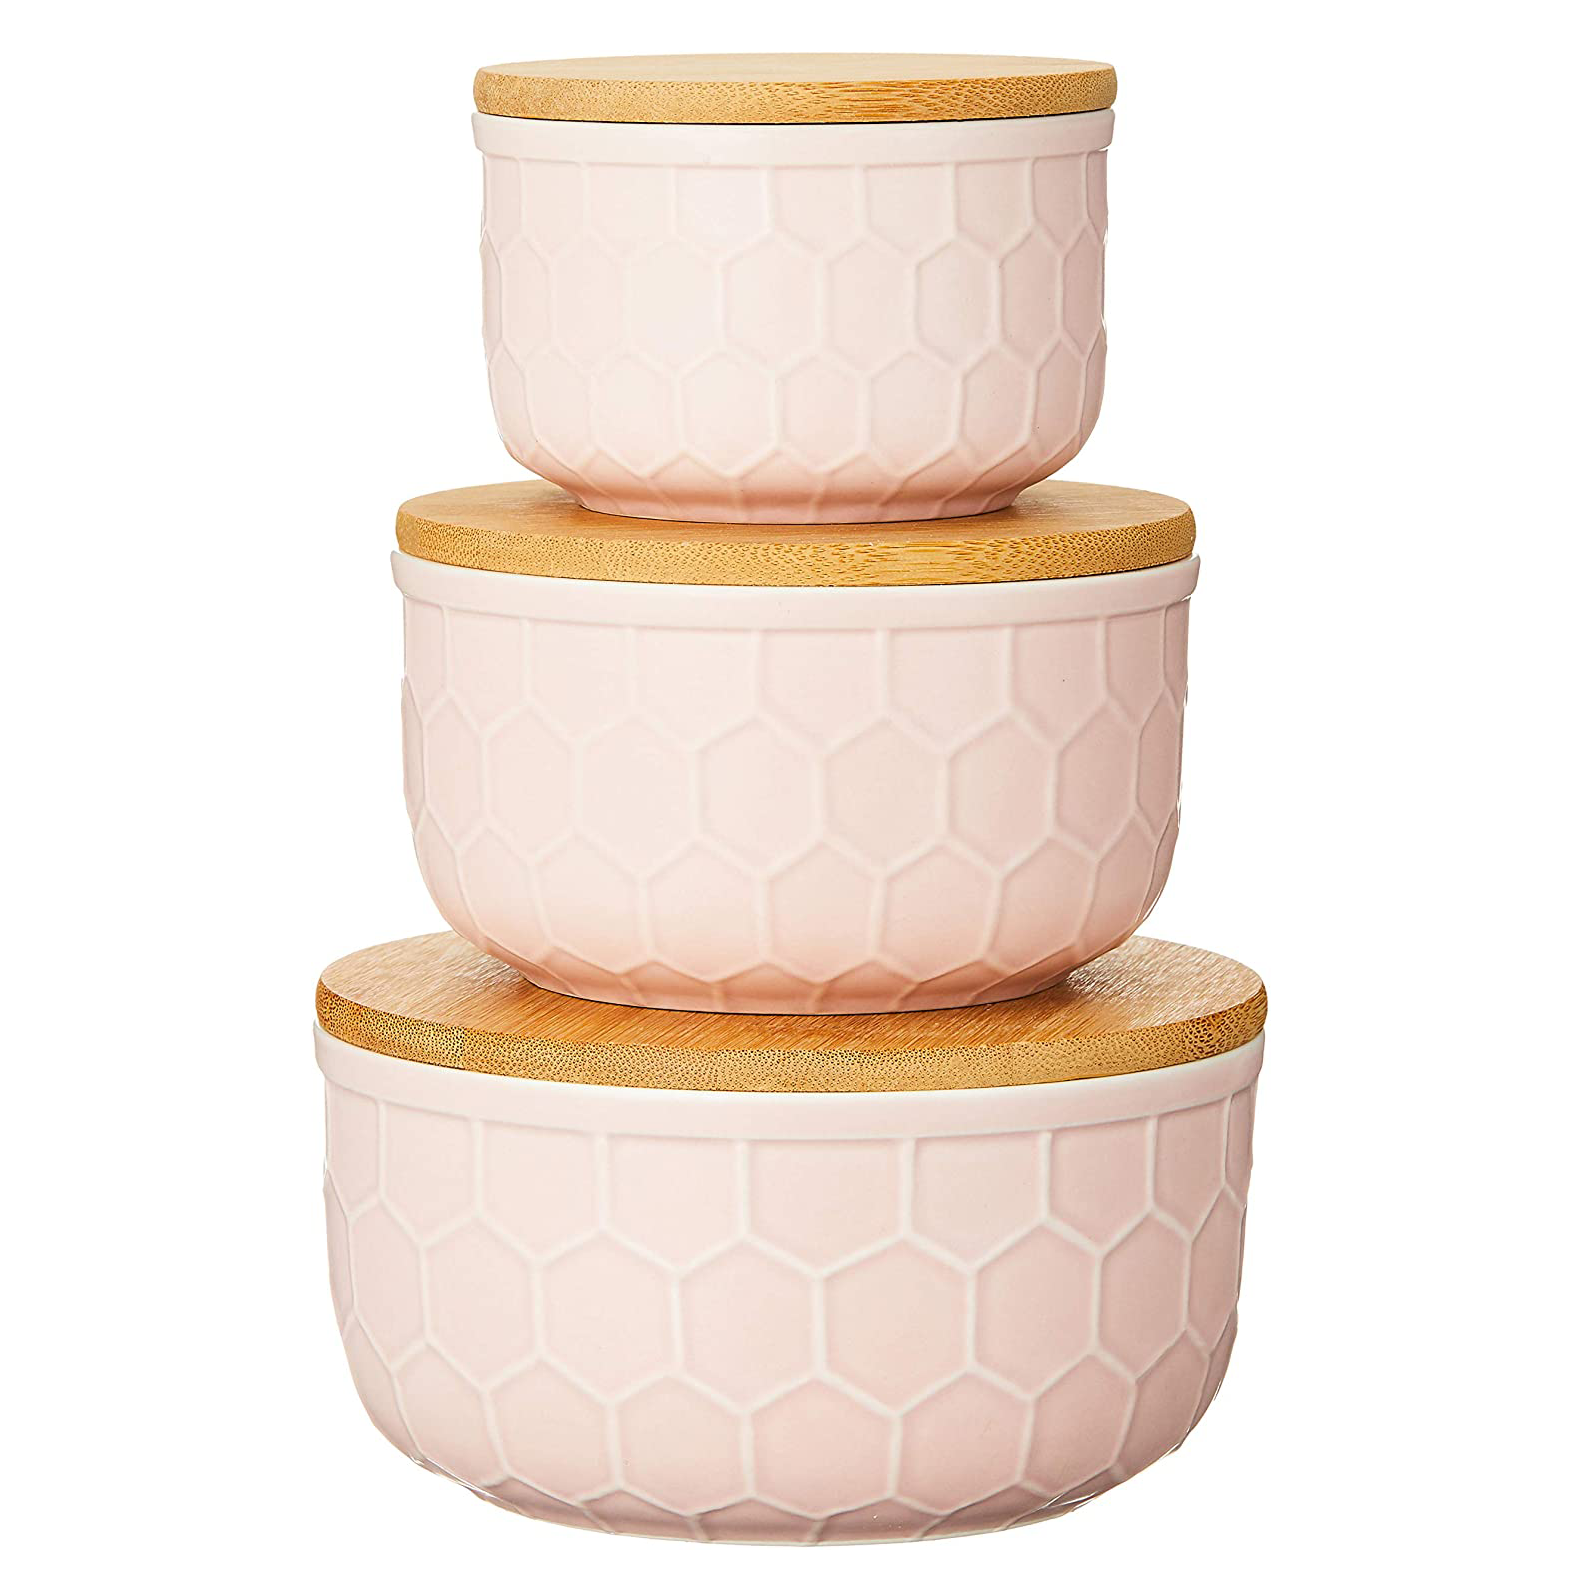 Bloomingville Set of 3 Round Pink Stoneware Bowls with Bamboo Lids